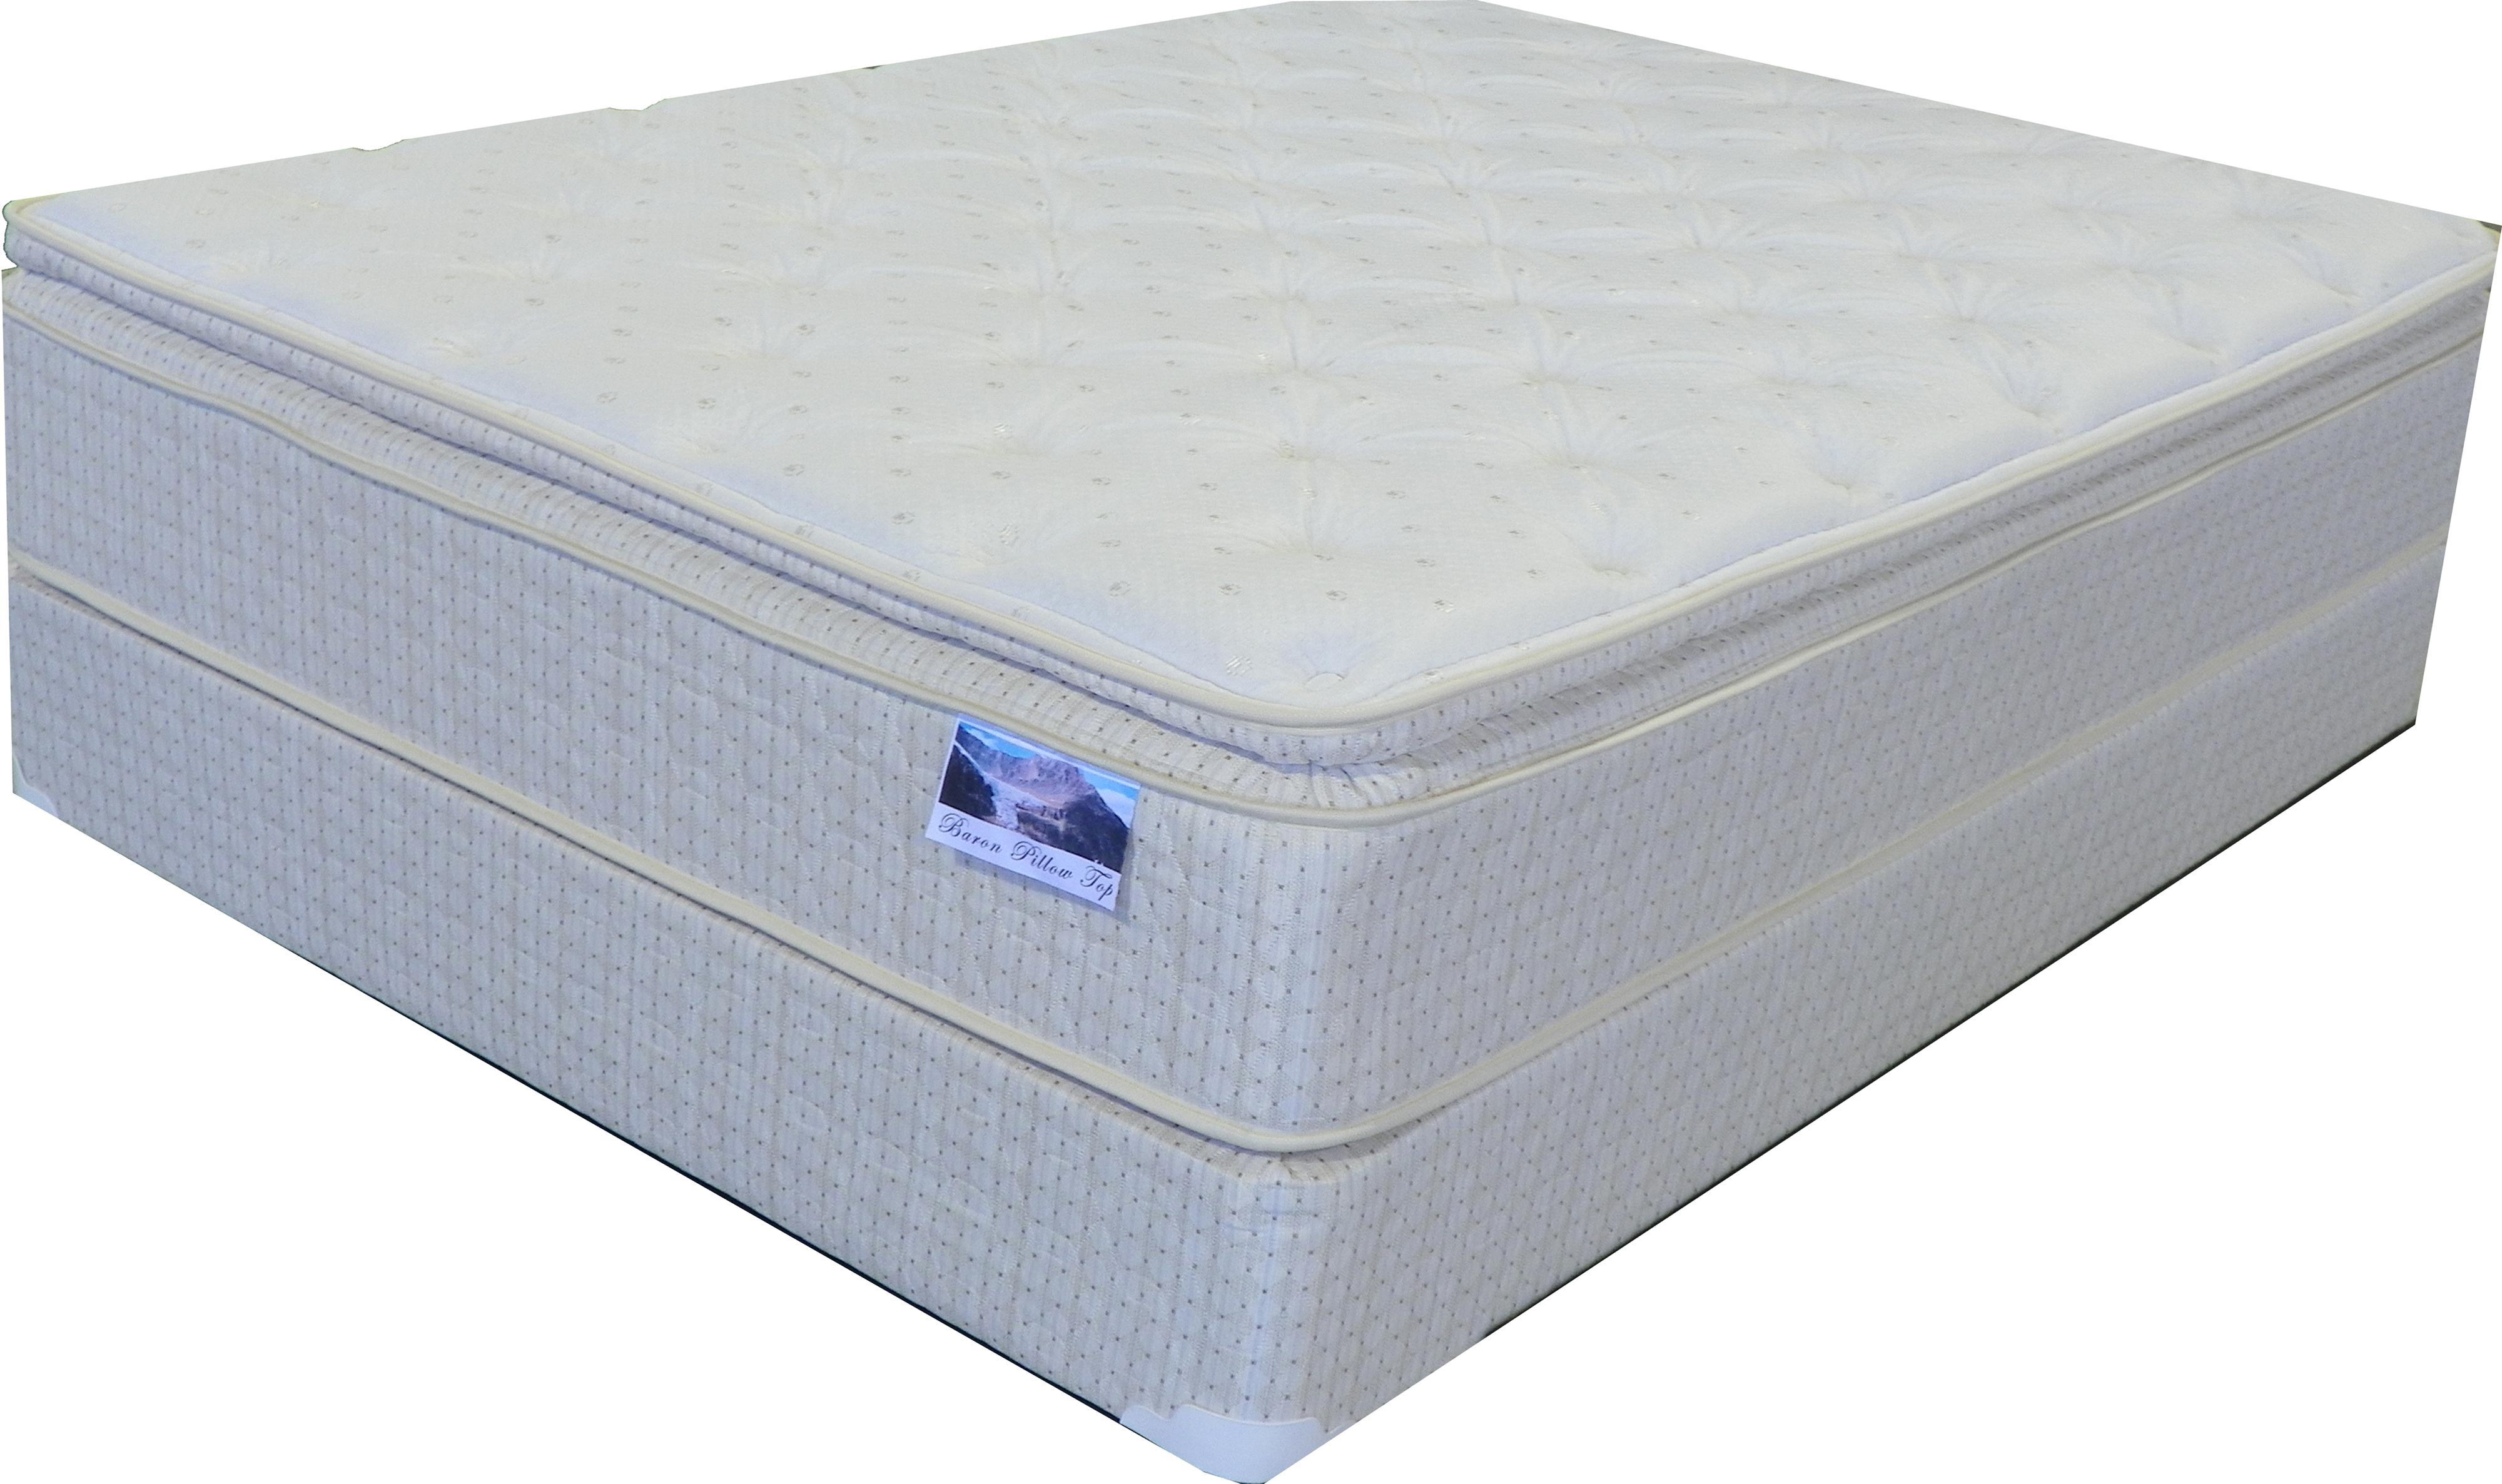 eurotop twin only mattress top blanket cushion king federation select sealy gallery california pillow